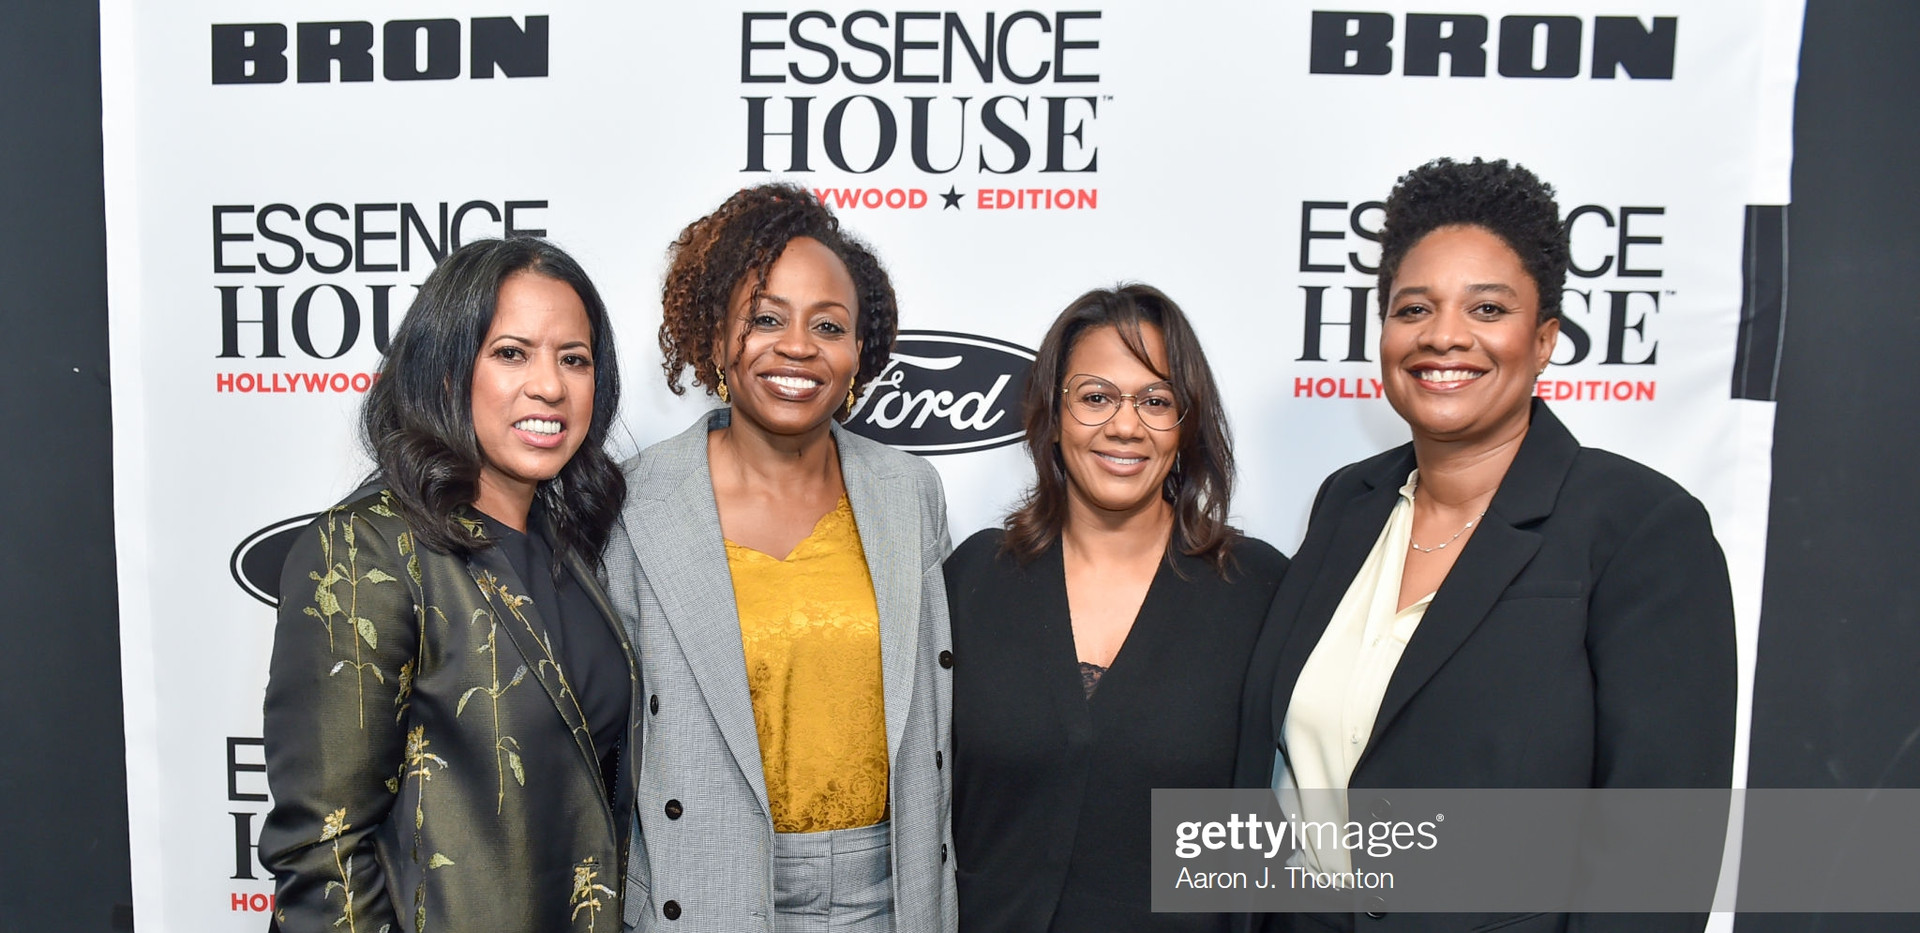 Michelle Ebanks, Pearlena Igbokwe, Tina Perry, and Vanessa Morrison